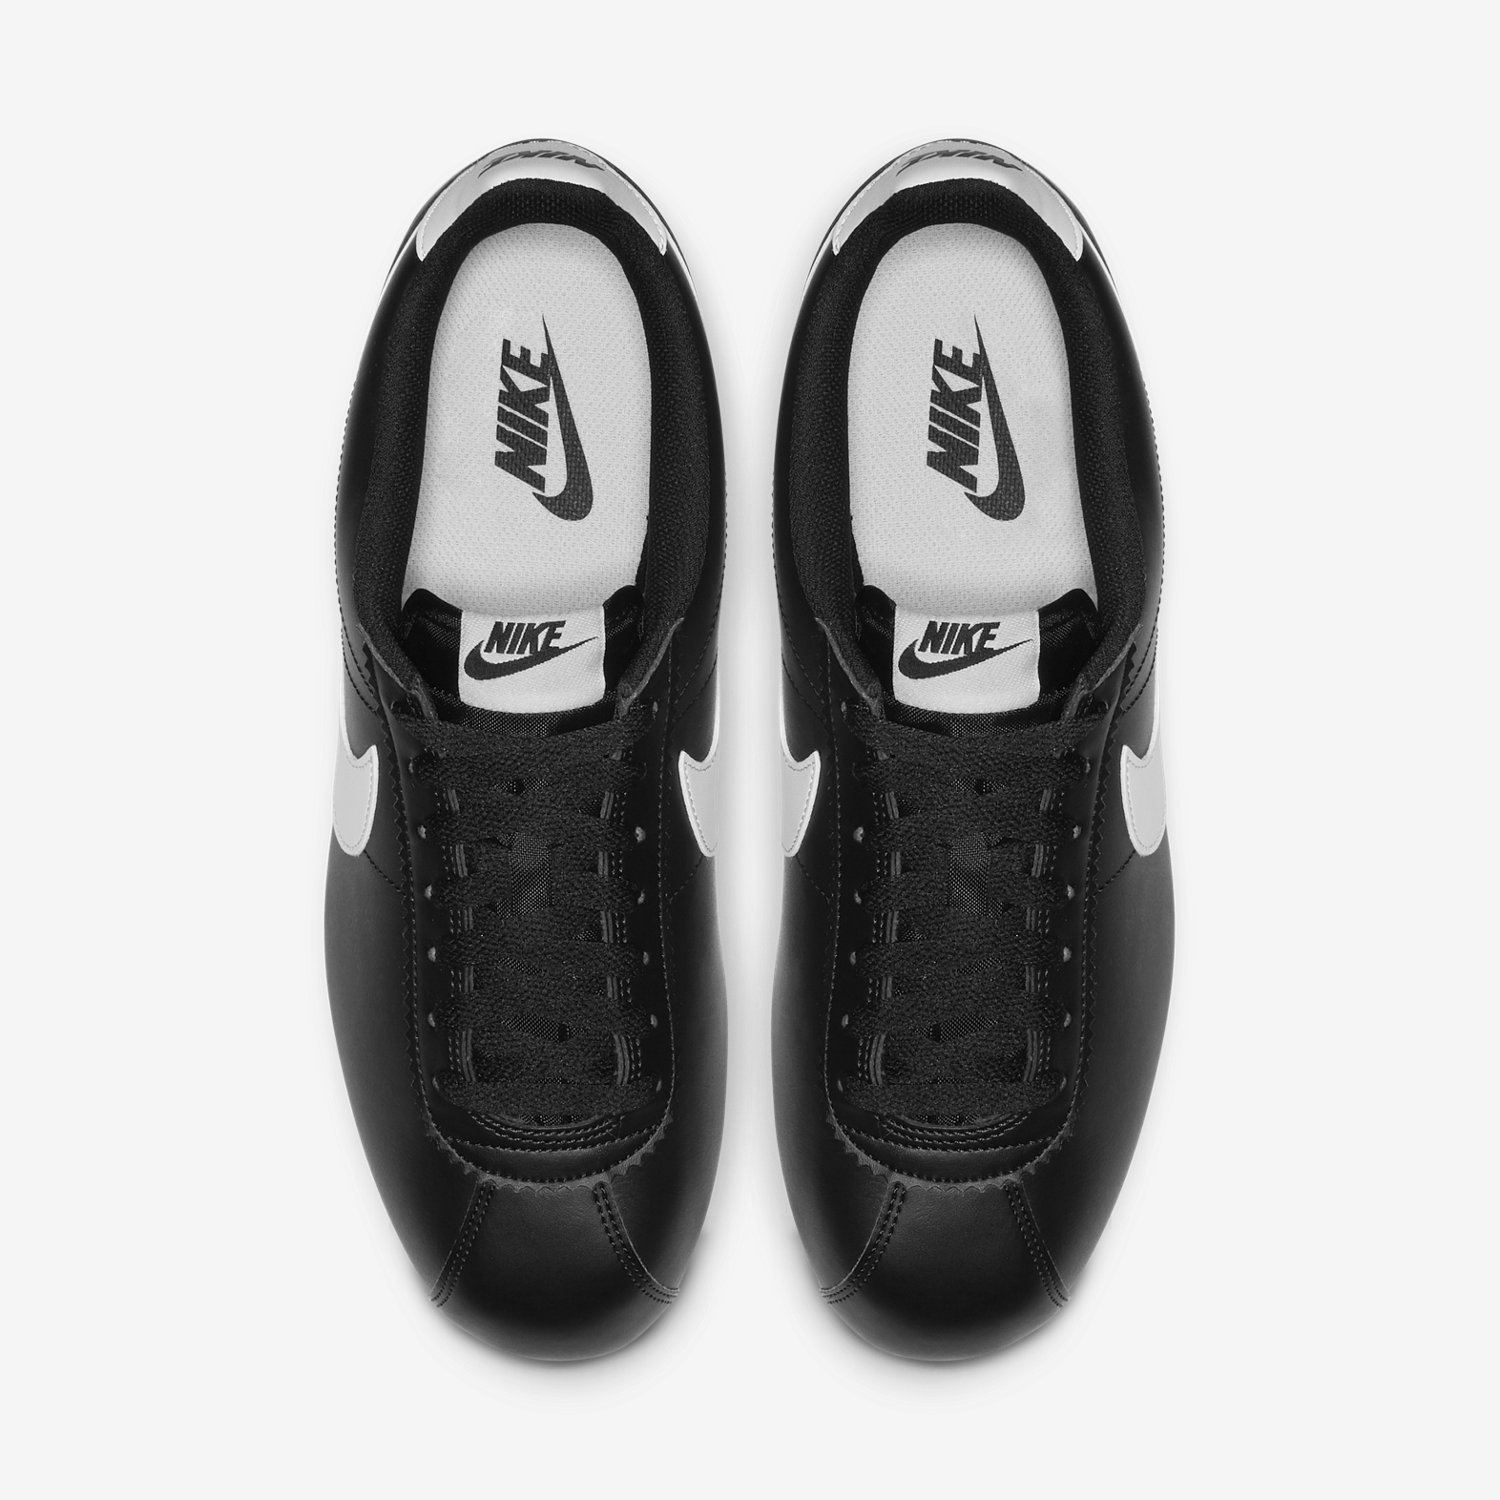 Nike Classic Cortez Leather Womens Shoe